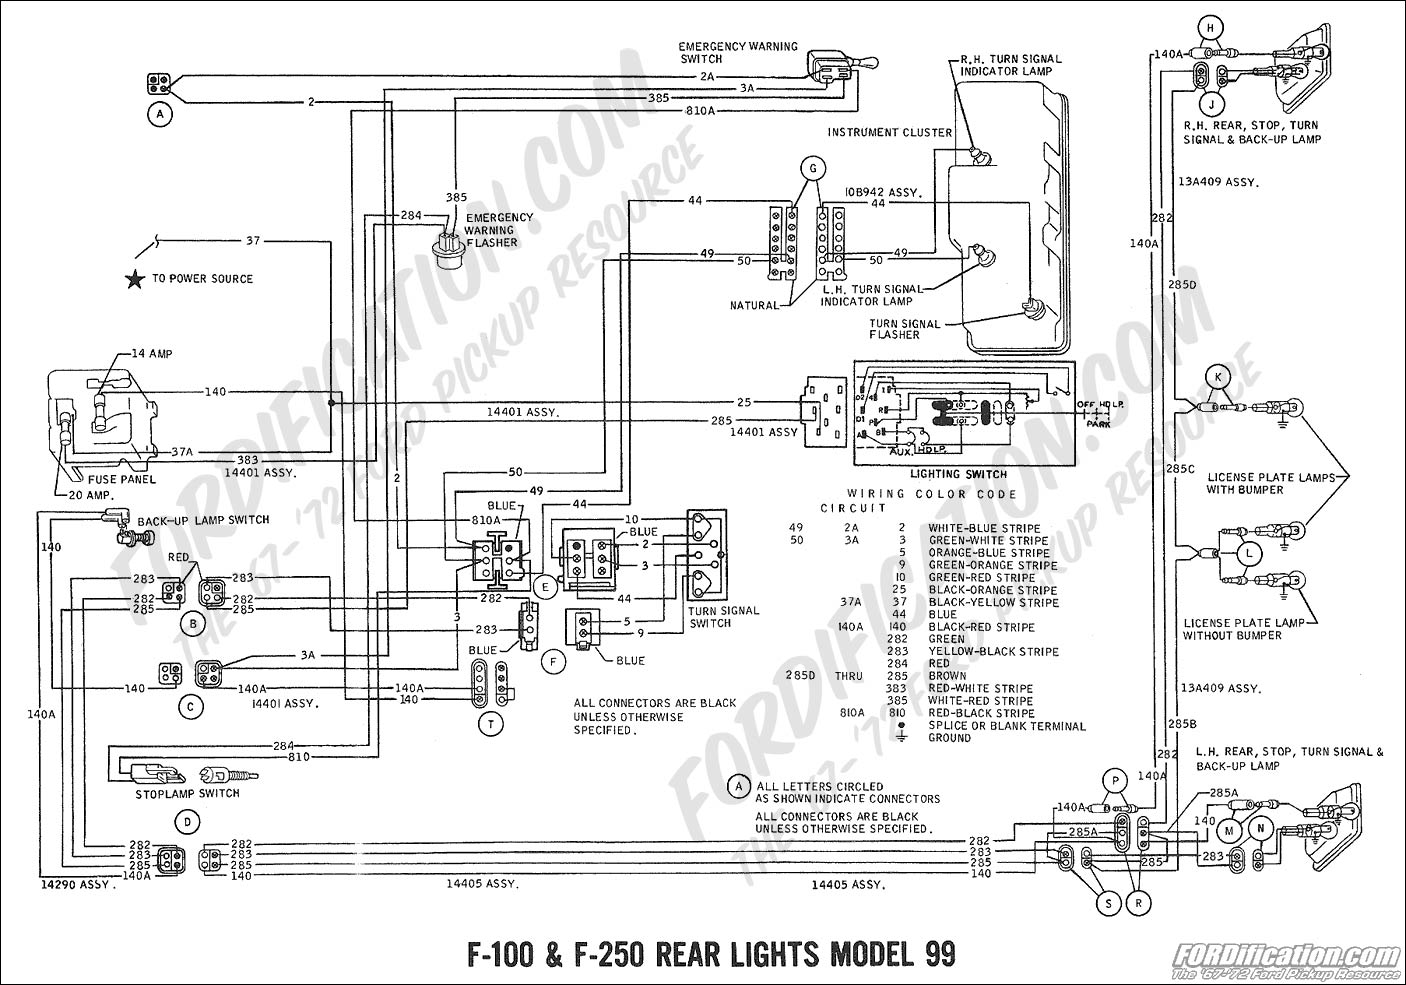 u0026gt  circuits  u0026gt  99 civic wiring diagram courtesy lights l21935